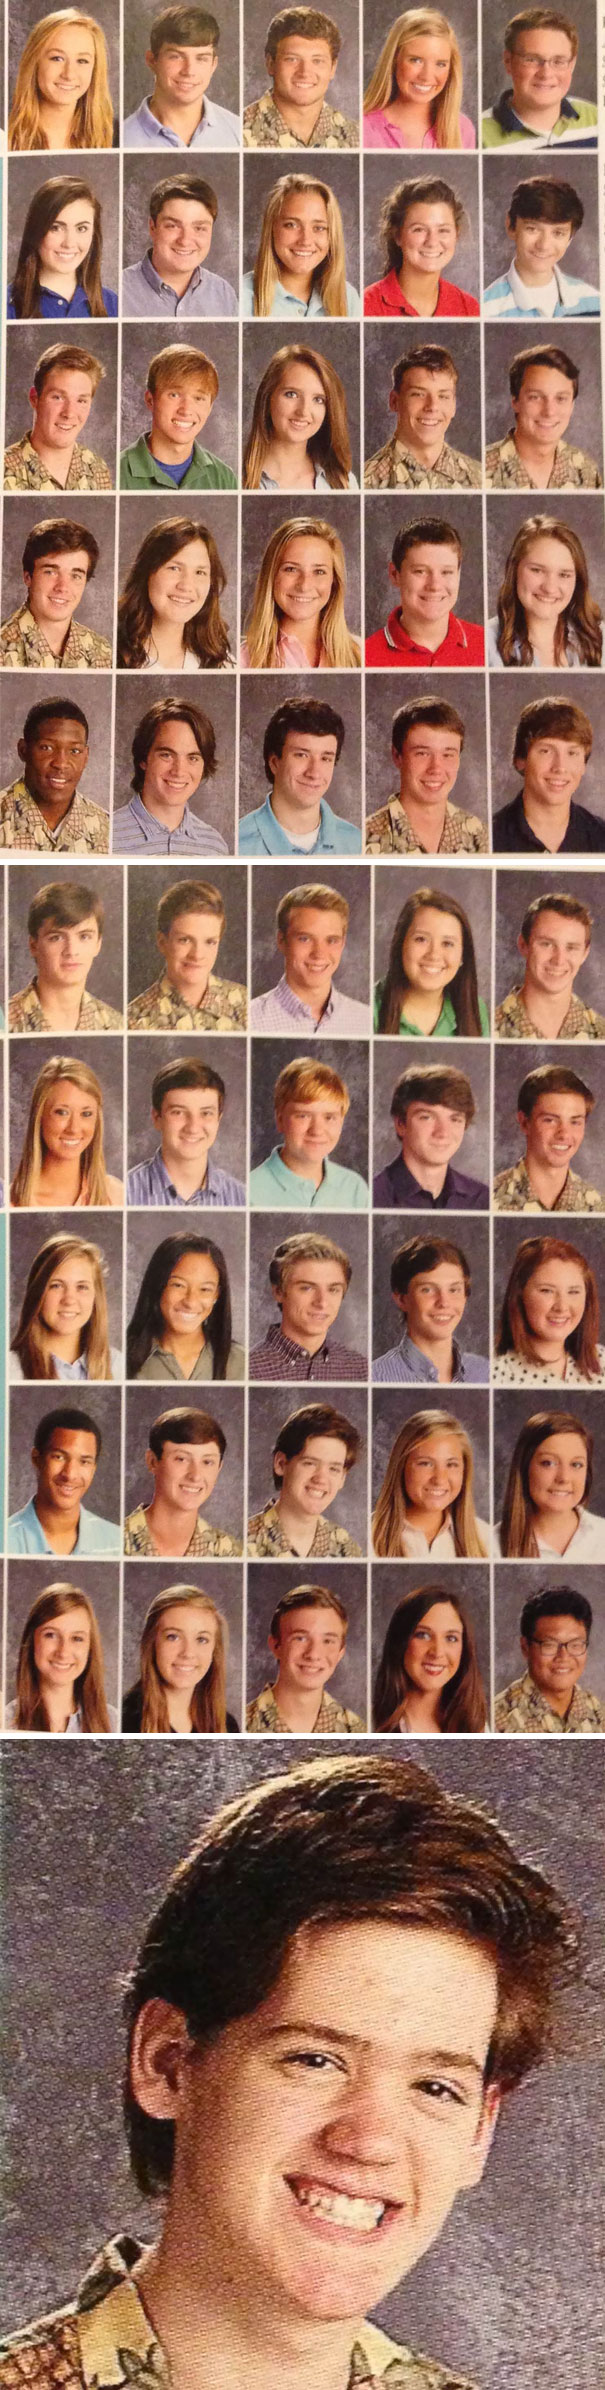 Some Guys At My School Thought It Would Be Funny To Pass Around A Pineapple Shirt On Picture Day